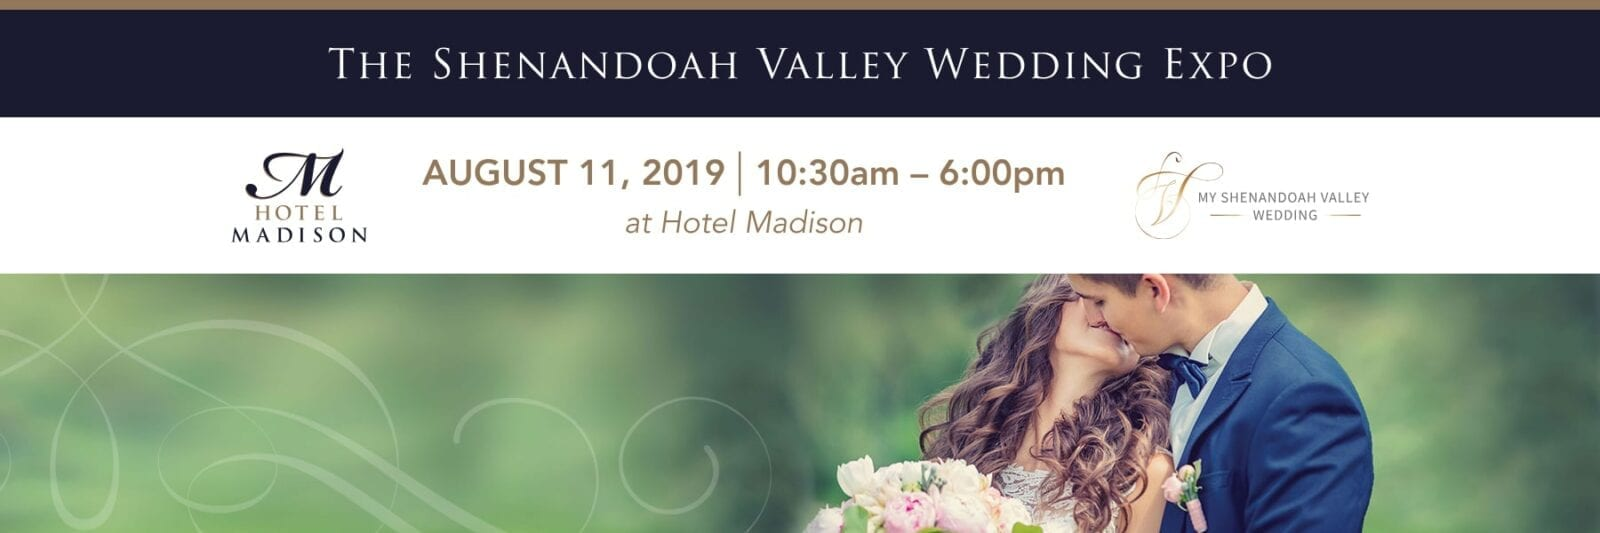 The Shenandoah Valley Wedding Expo August 11, 2019